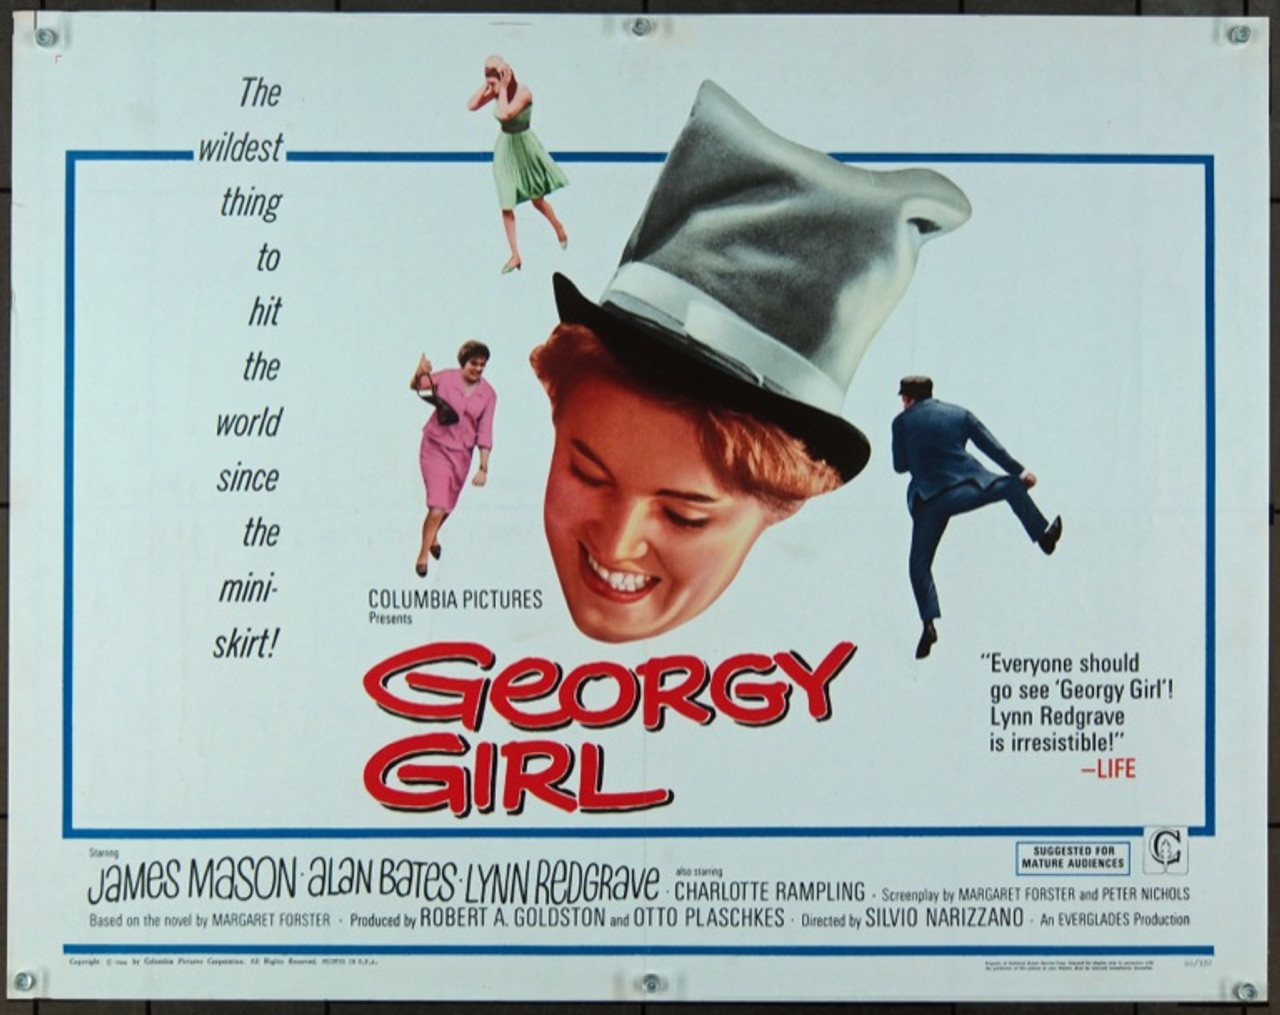 Original Georgy Girl (1966) movie poster in VF condition for $50